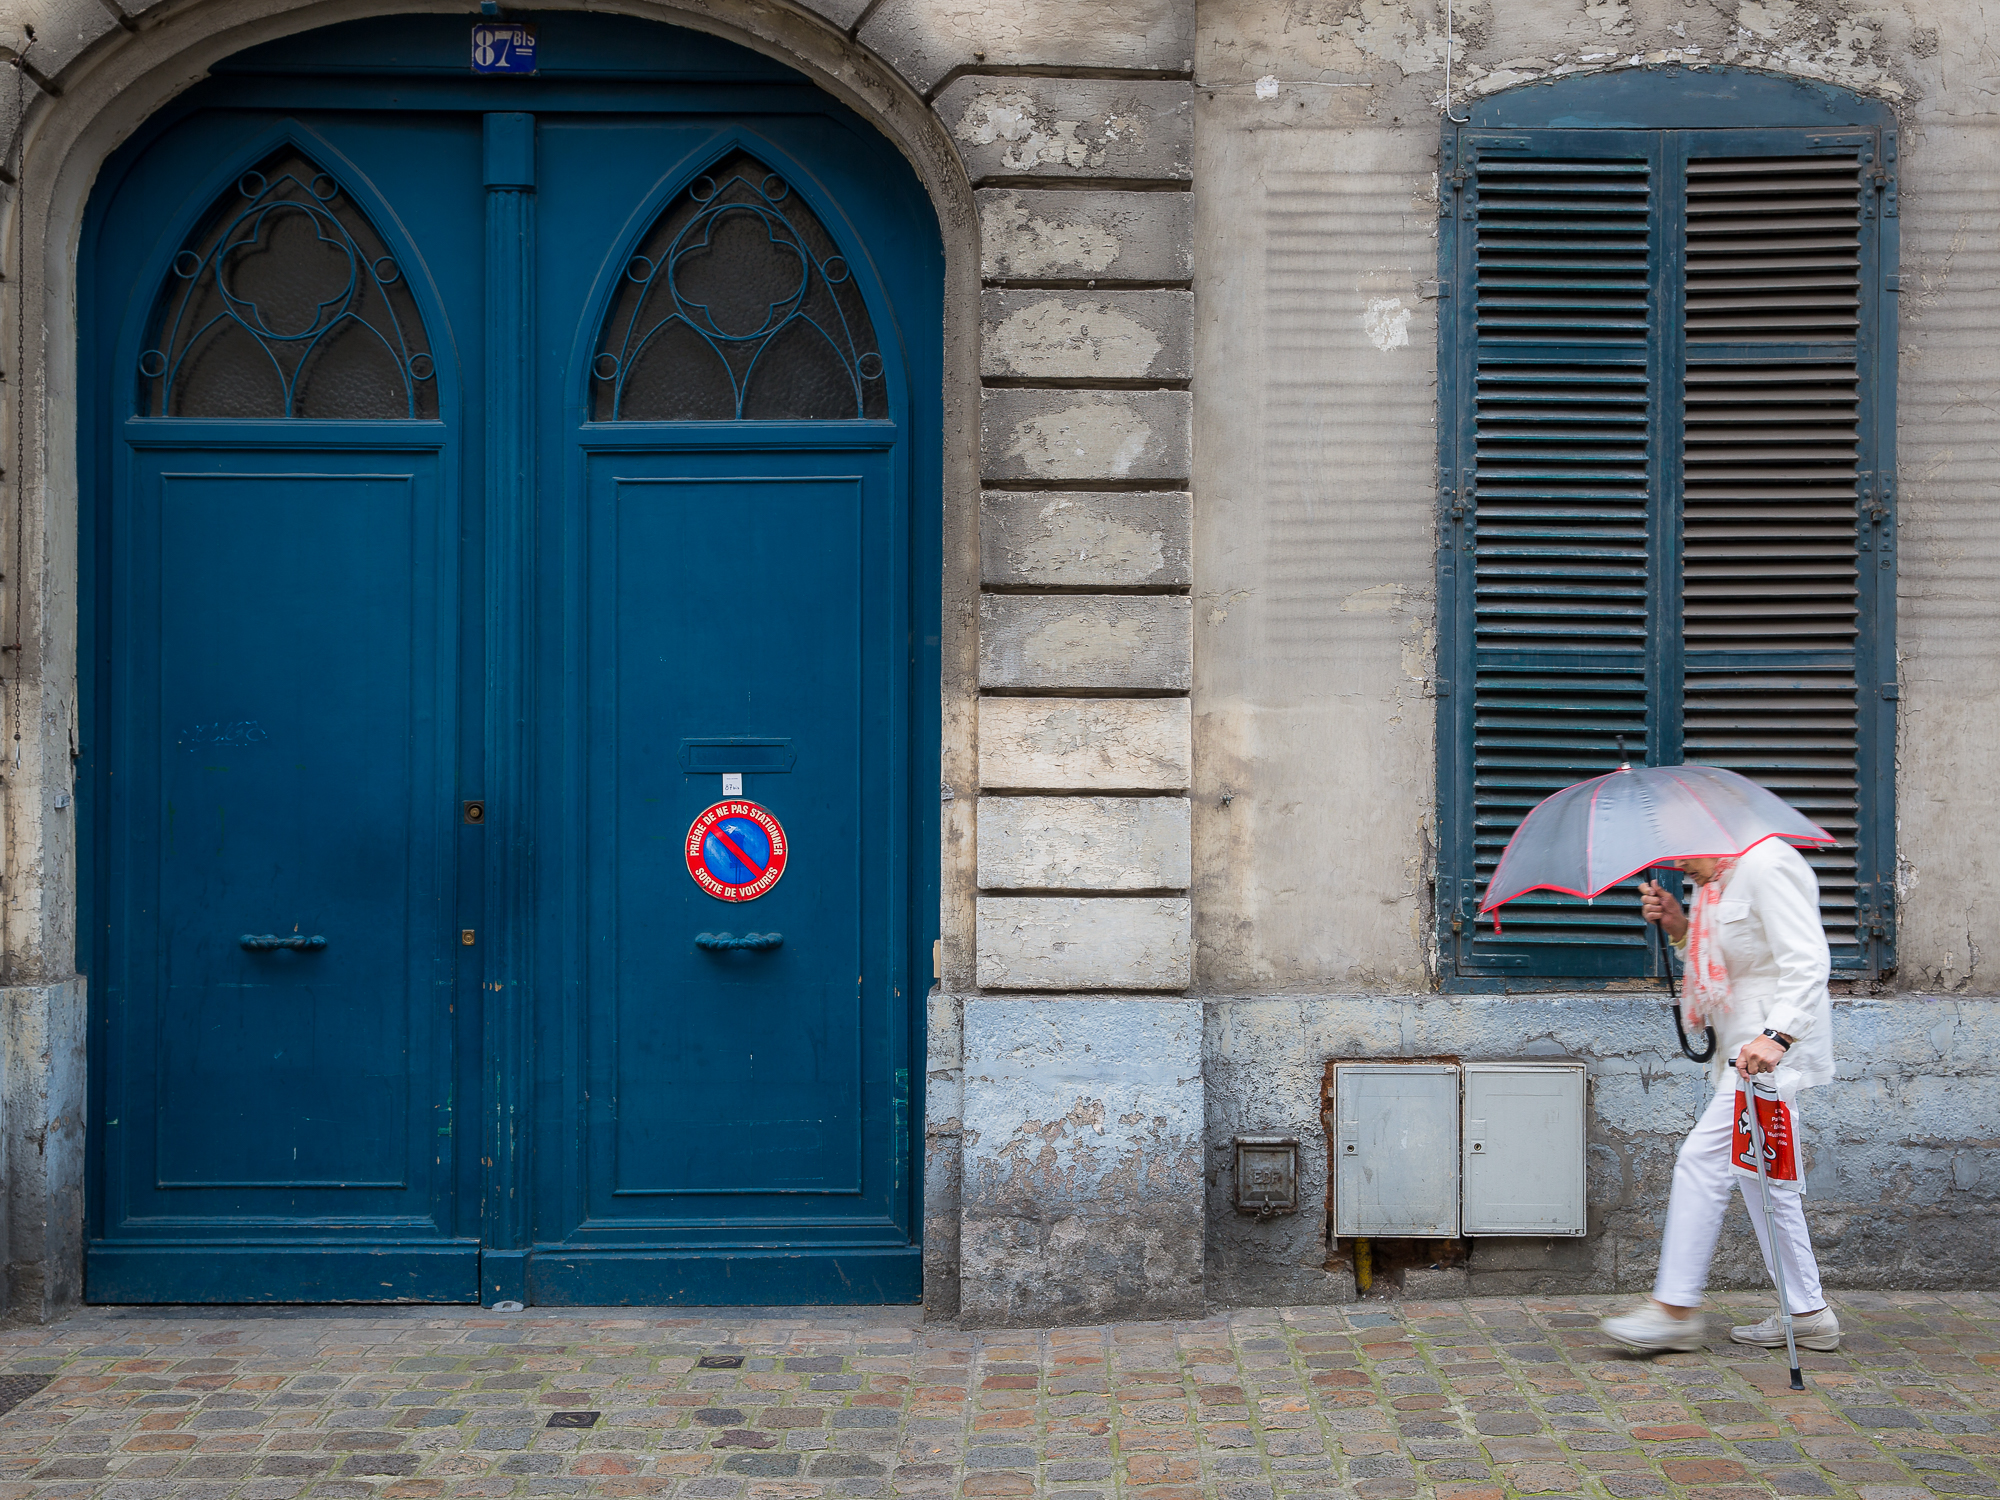 Lady walks across blue shutters and doors holding umbrella